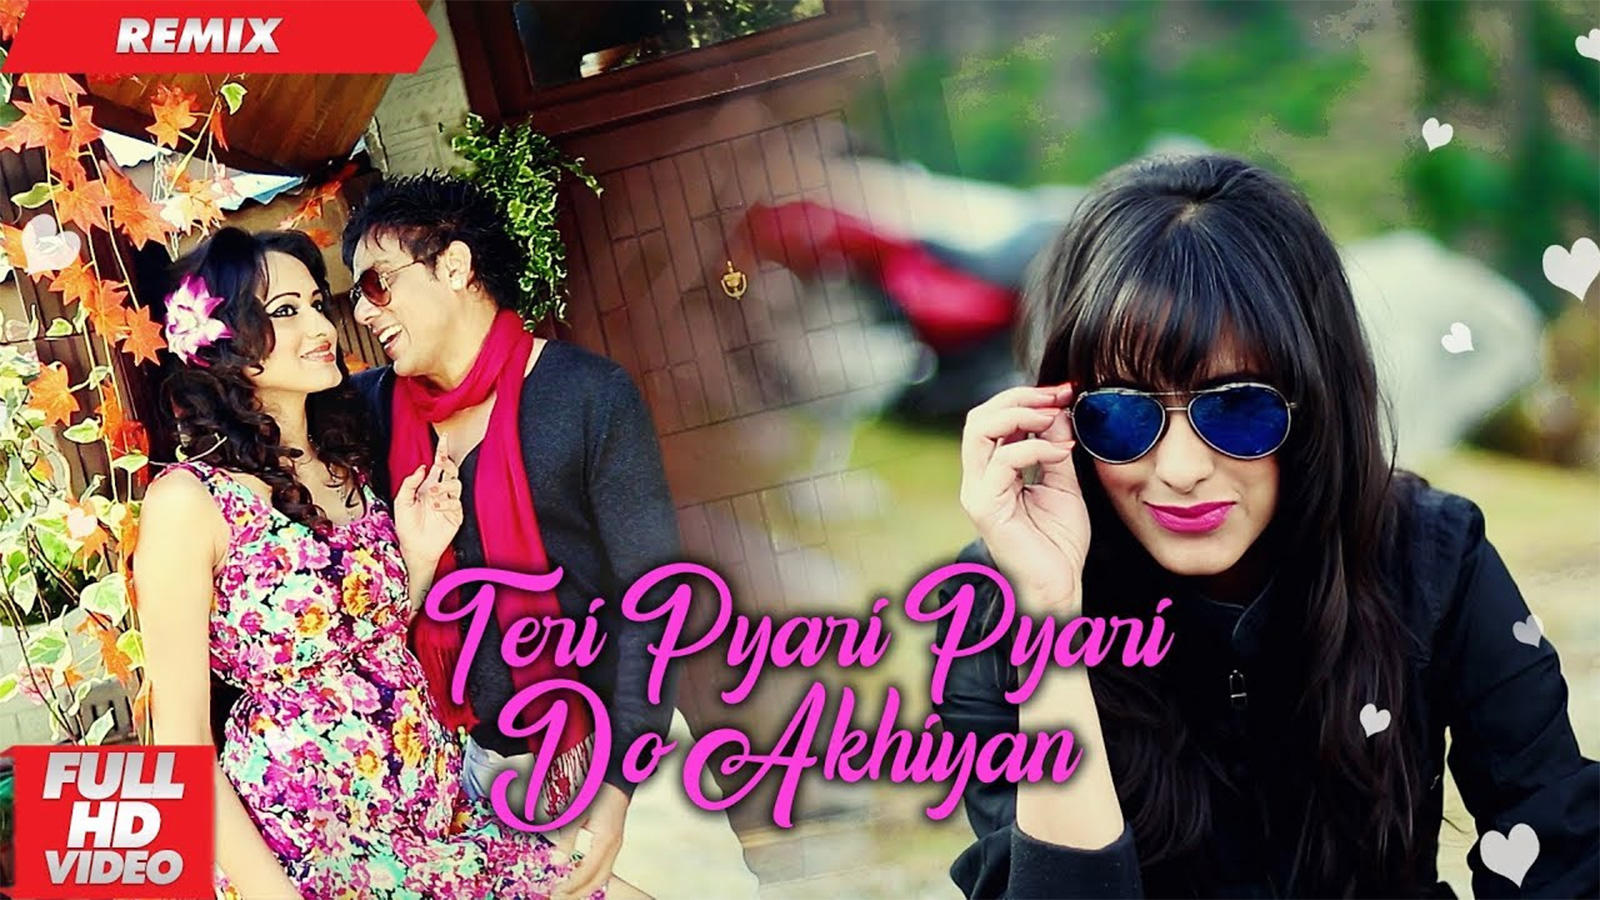 Latest Punjabi Song Teri Pyari Pyari Do Akhiyan Sung By Bhinda Aujla and  Bobby Layal (Remix)